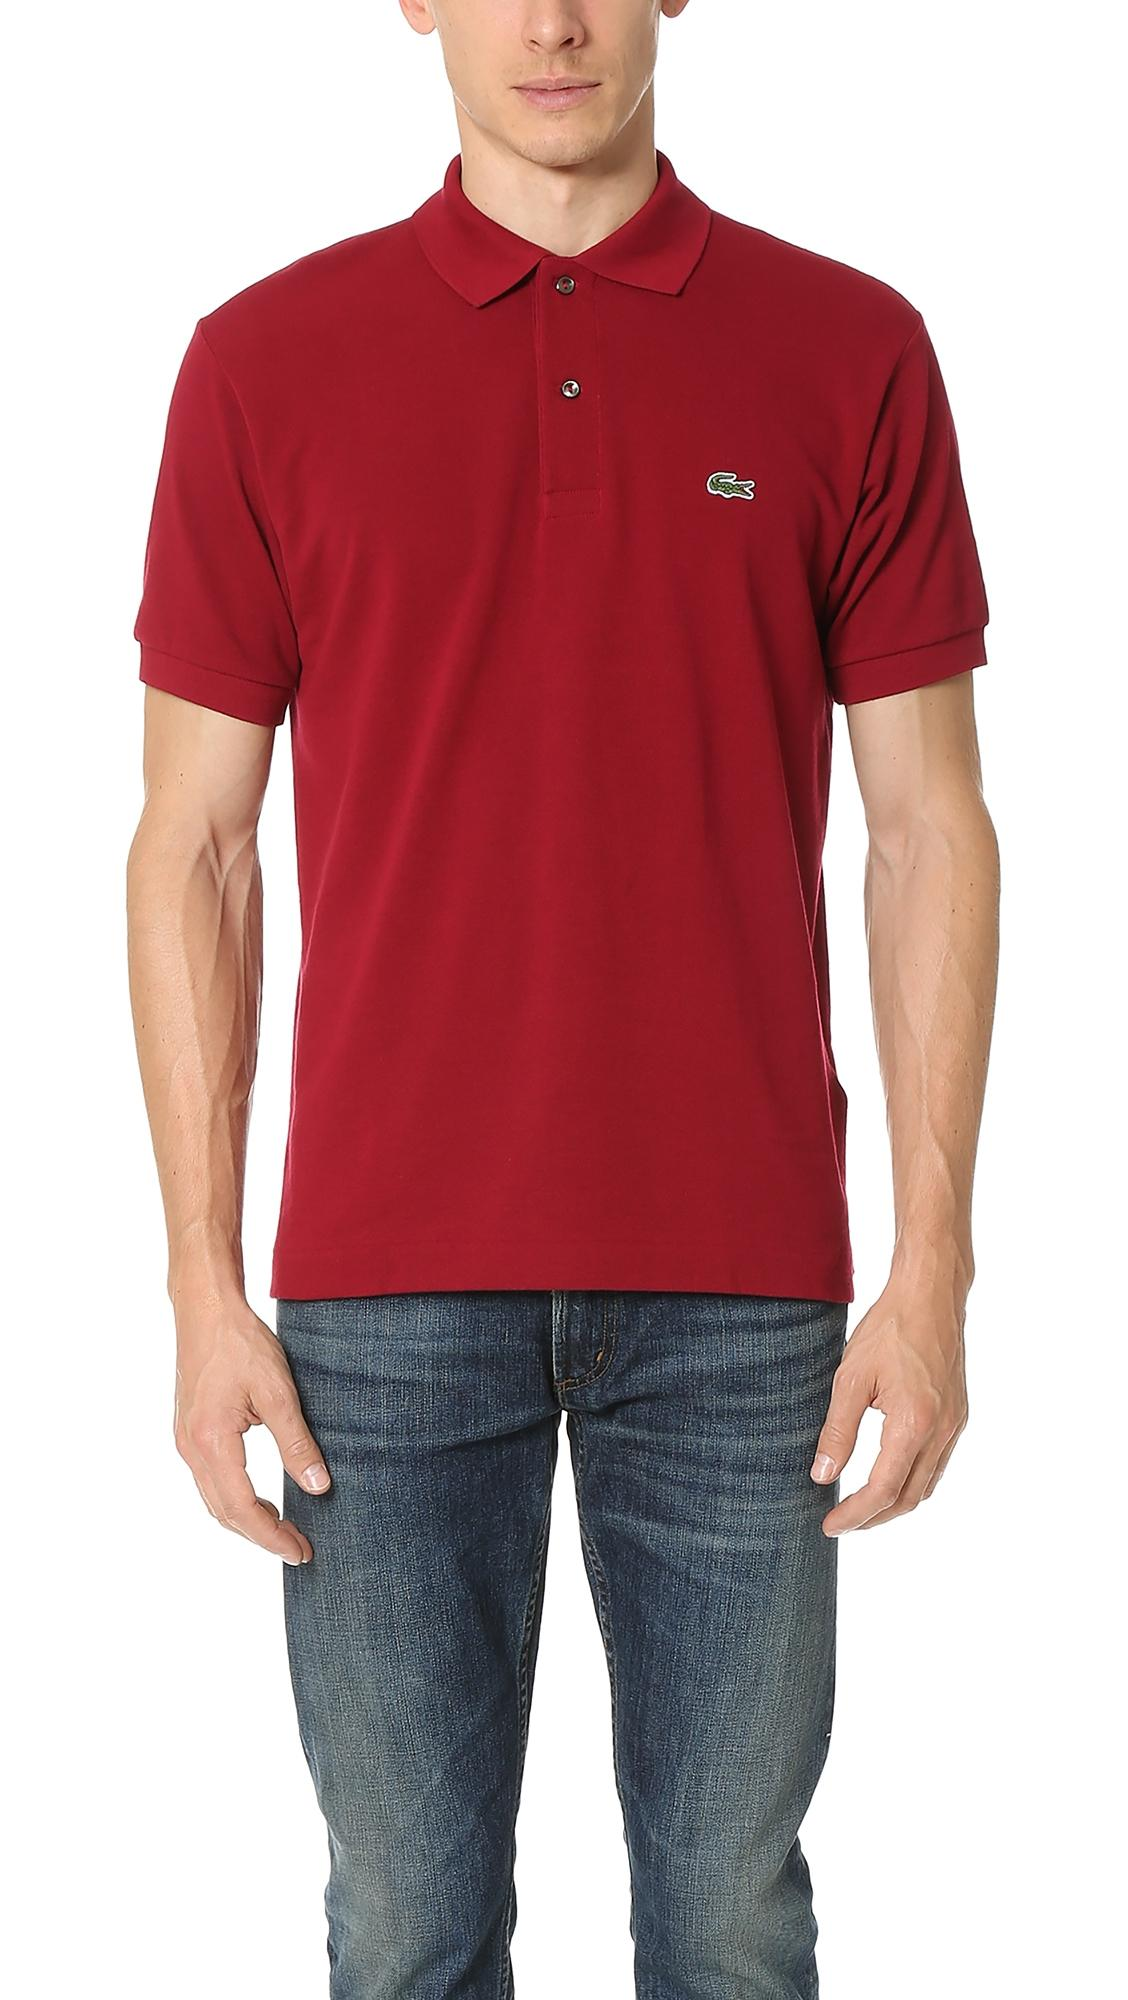 Lacoste Men's Regular Fit Pima Cotton Interlock Polo In Bordeau